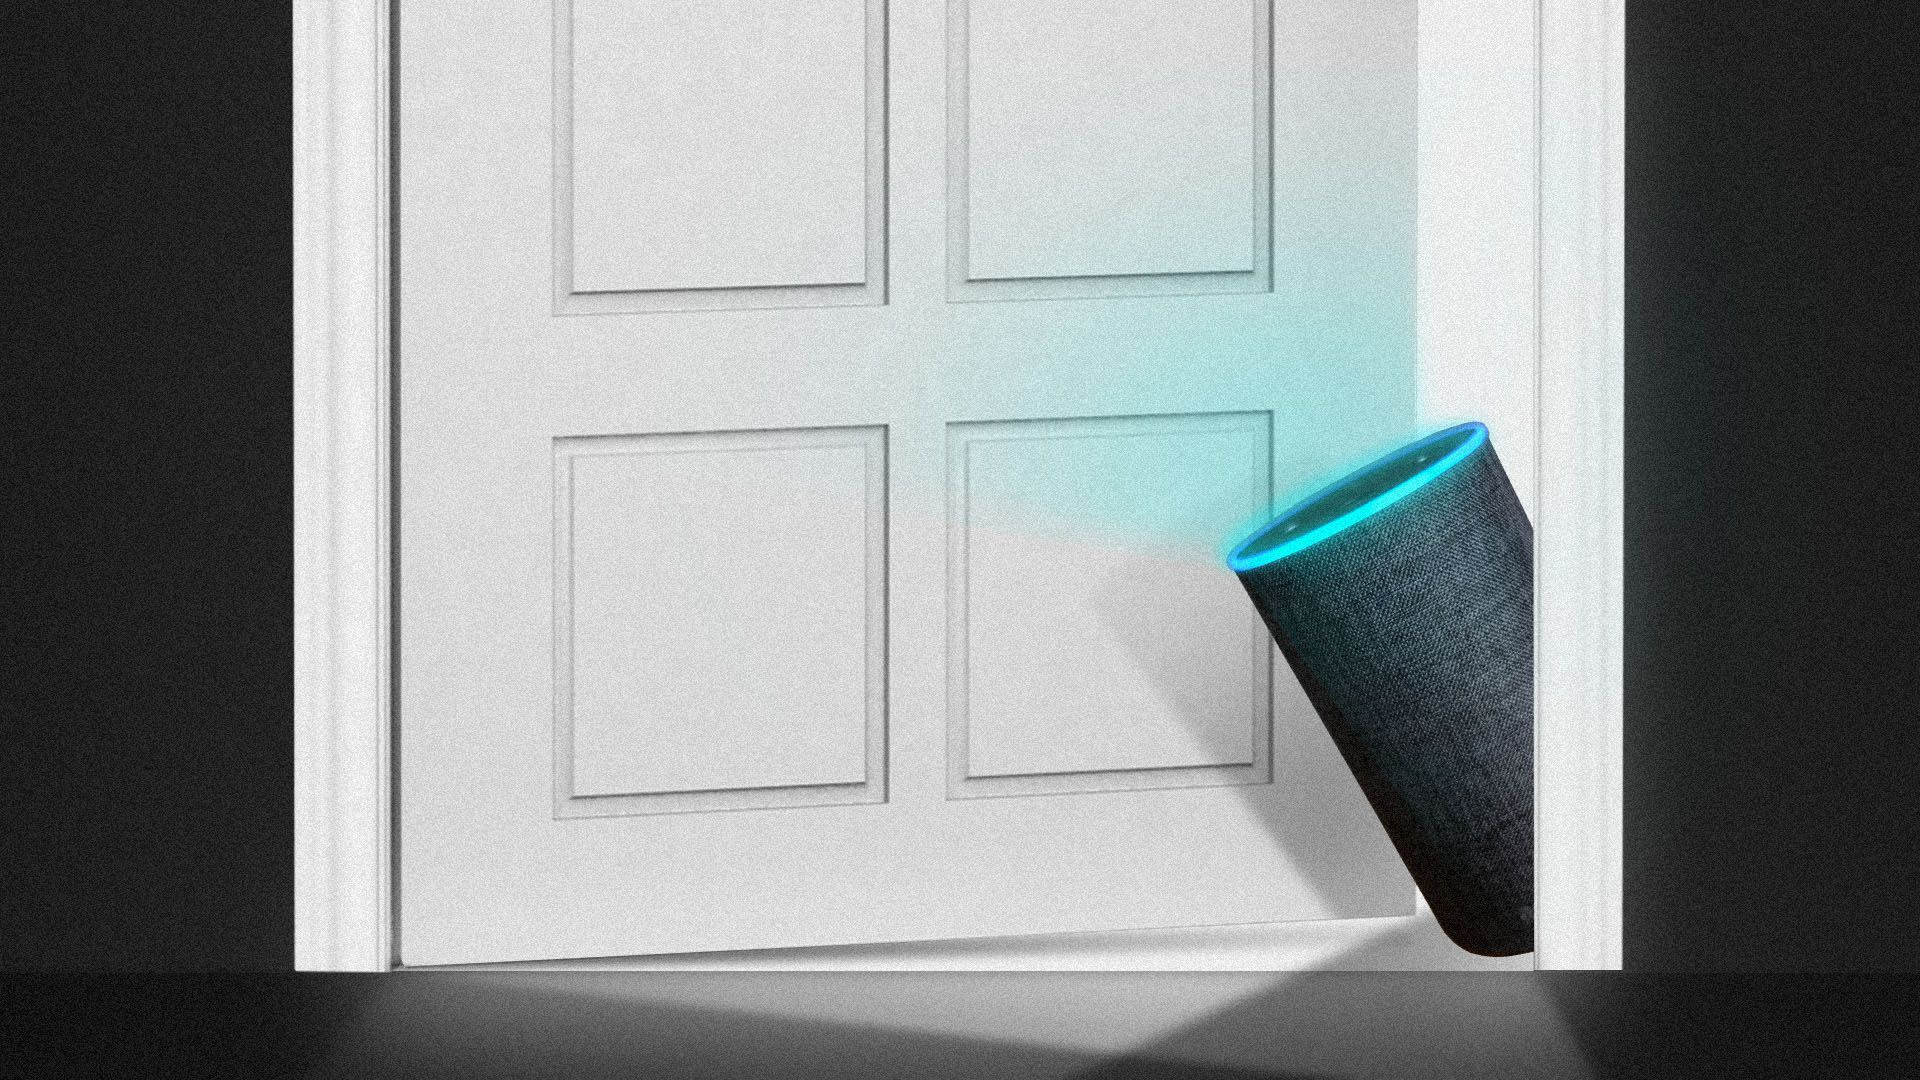 Illustration of an Amazon Alexa peaking out from behind a door